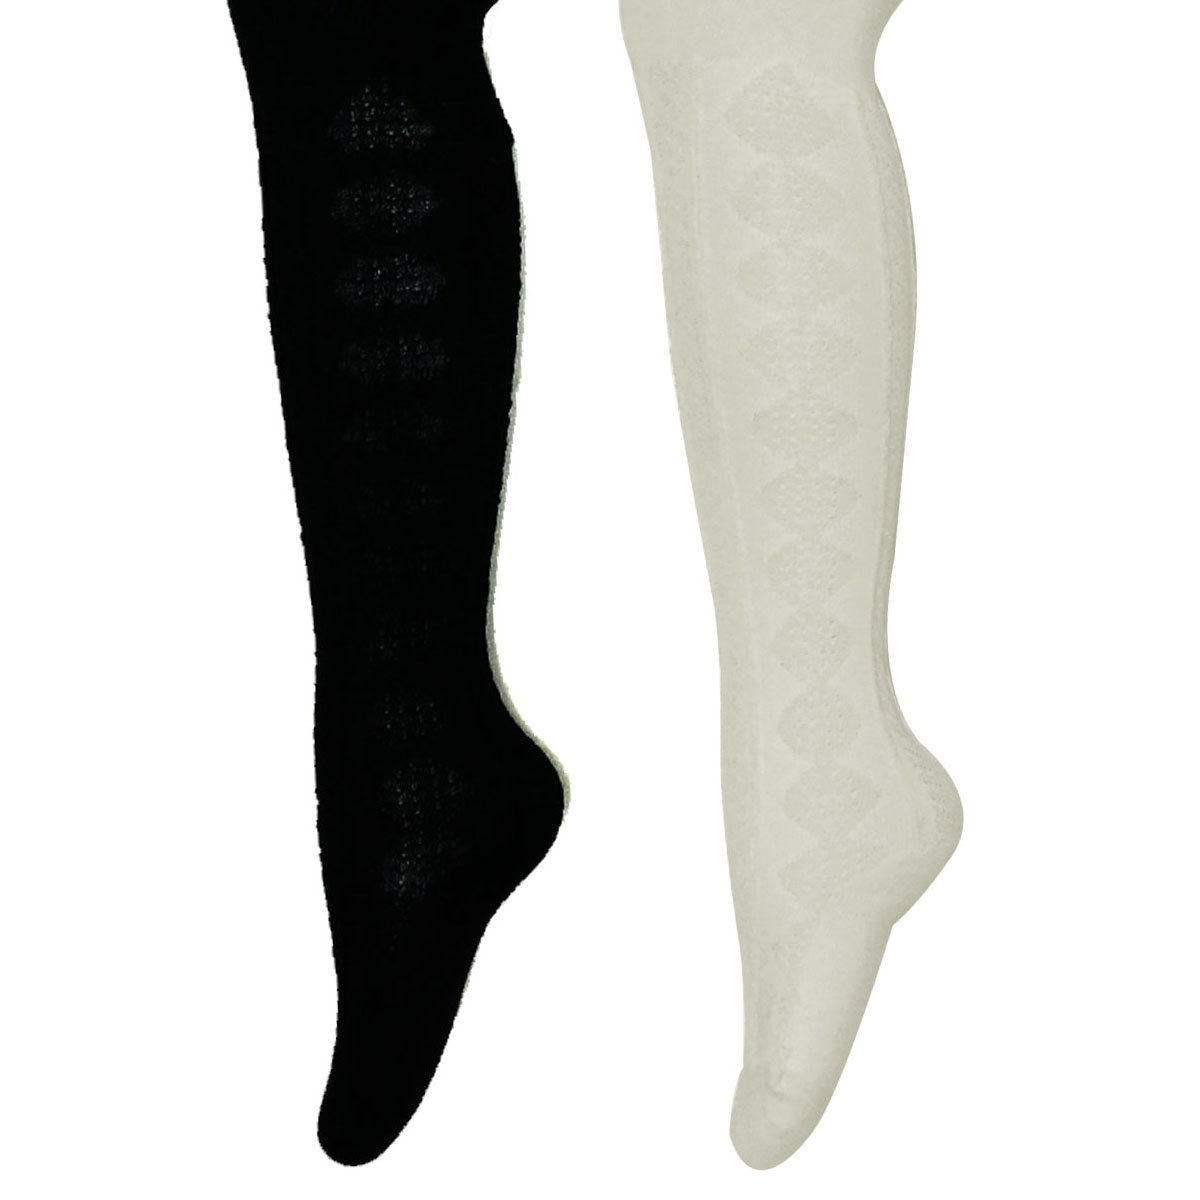 Allydrew Little Girls Thick Cable Knit Tights (Set of 2), Cream and Black (Size 5-6)